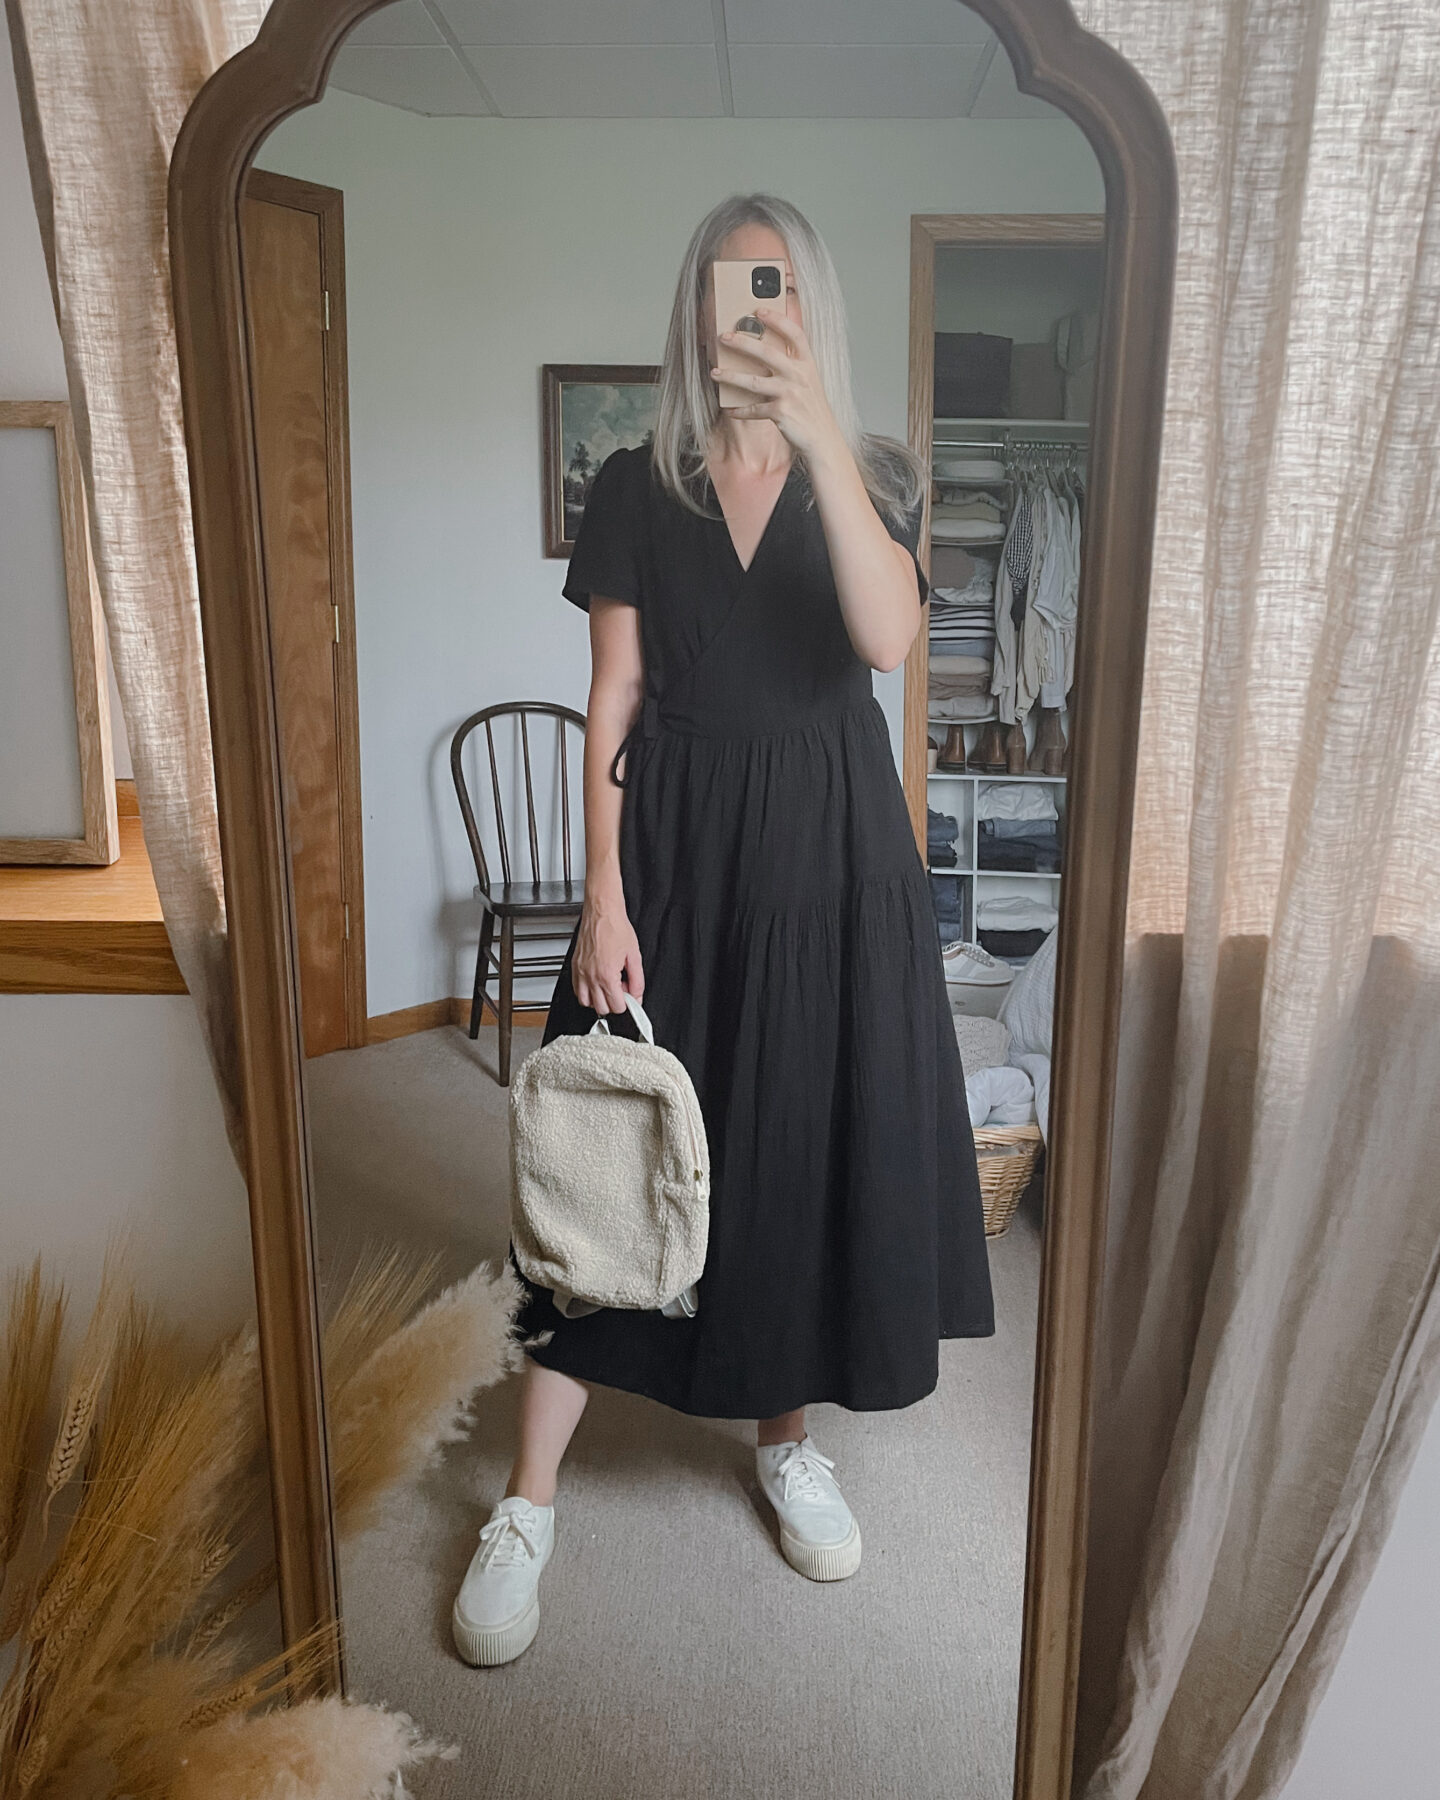 Karin Emily wears a black gauze dress with a sherpa bag and platform sneakers